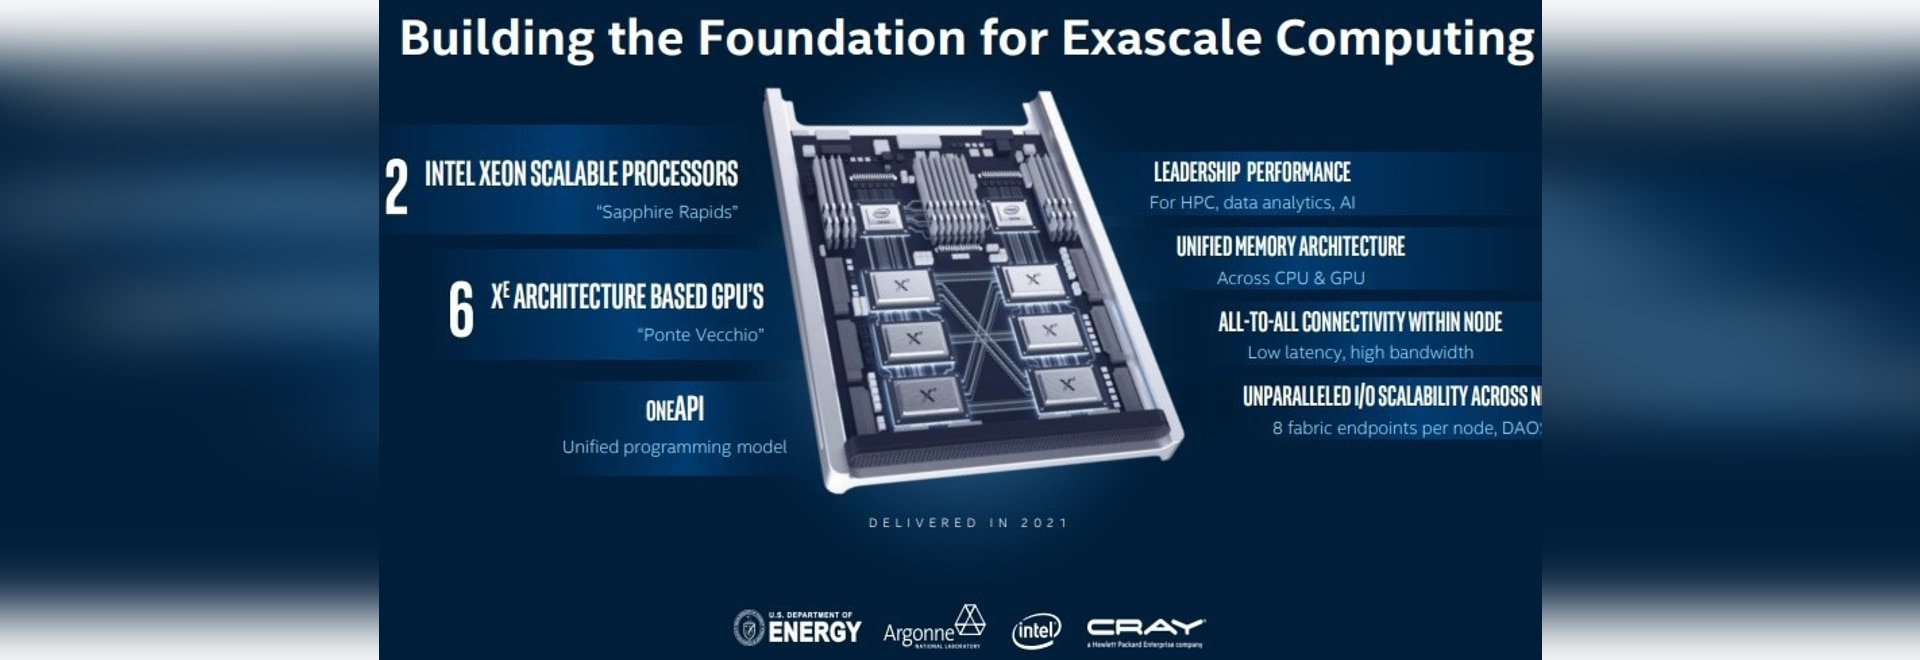 Intel said the Aurora system at Argonne National Lab will have six of the 7nm exascale Ponte Vecchio GPUs. (Intel)